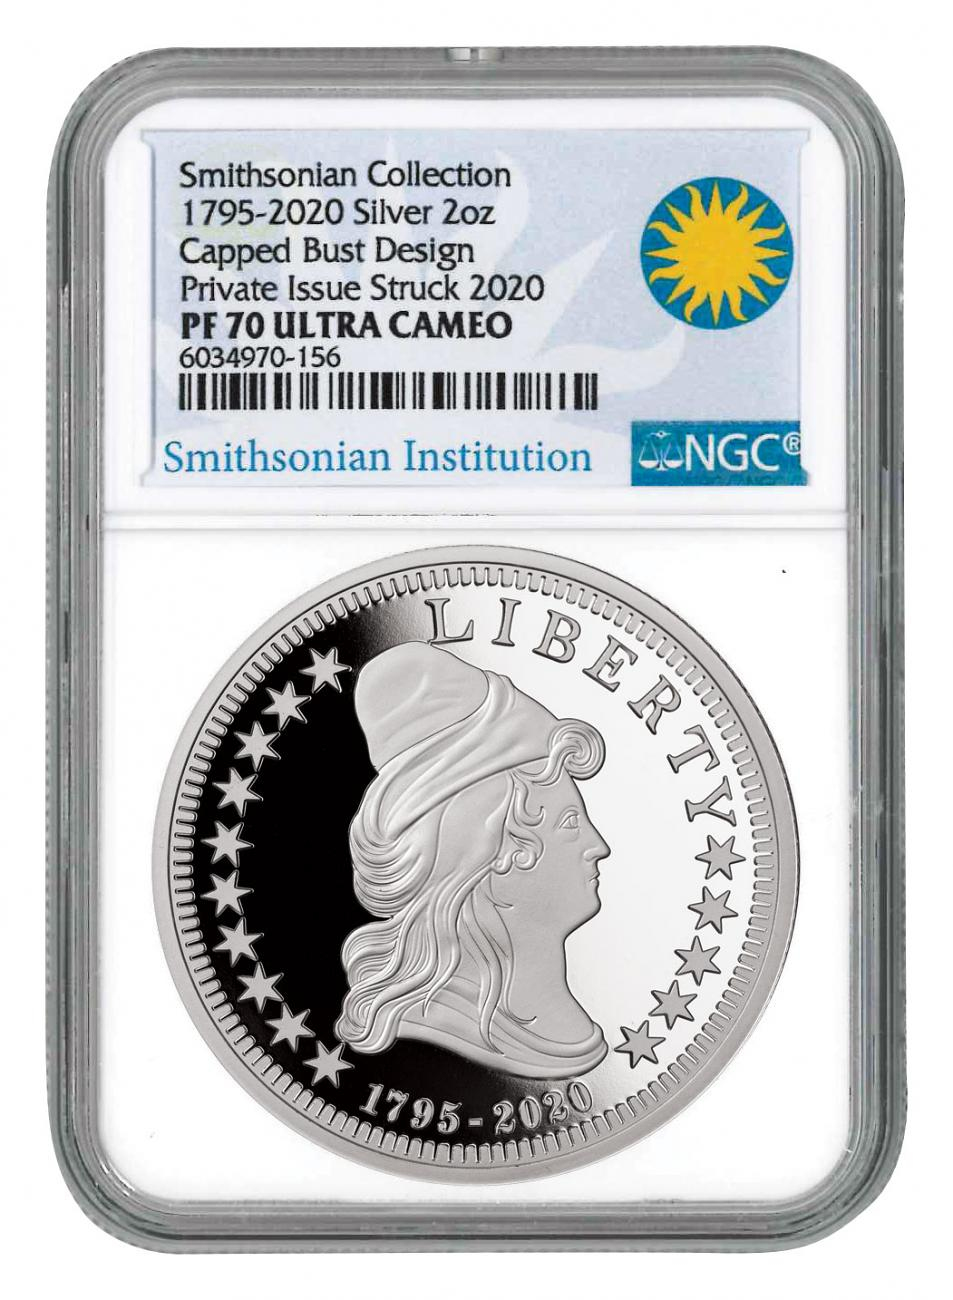 1795-2020 Capped Bust Smithsonian Collection 2 oz Silver Proof Medal NGC PF70 UC